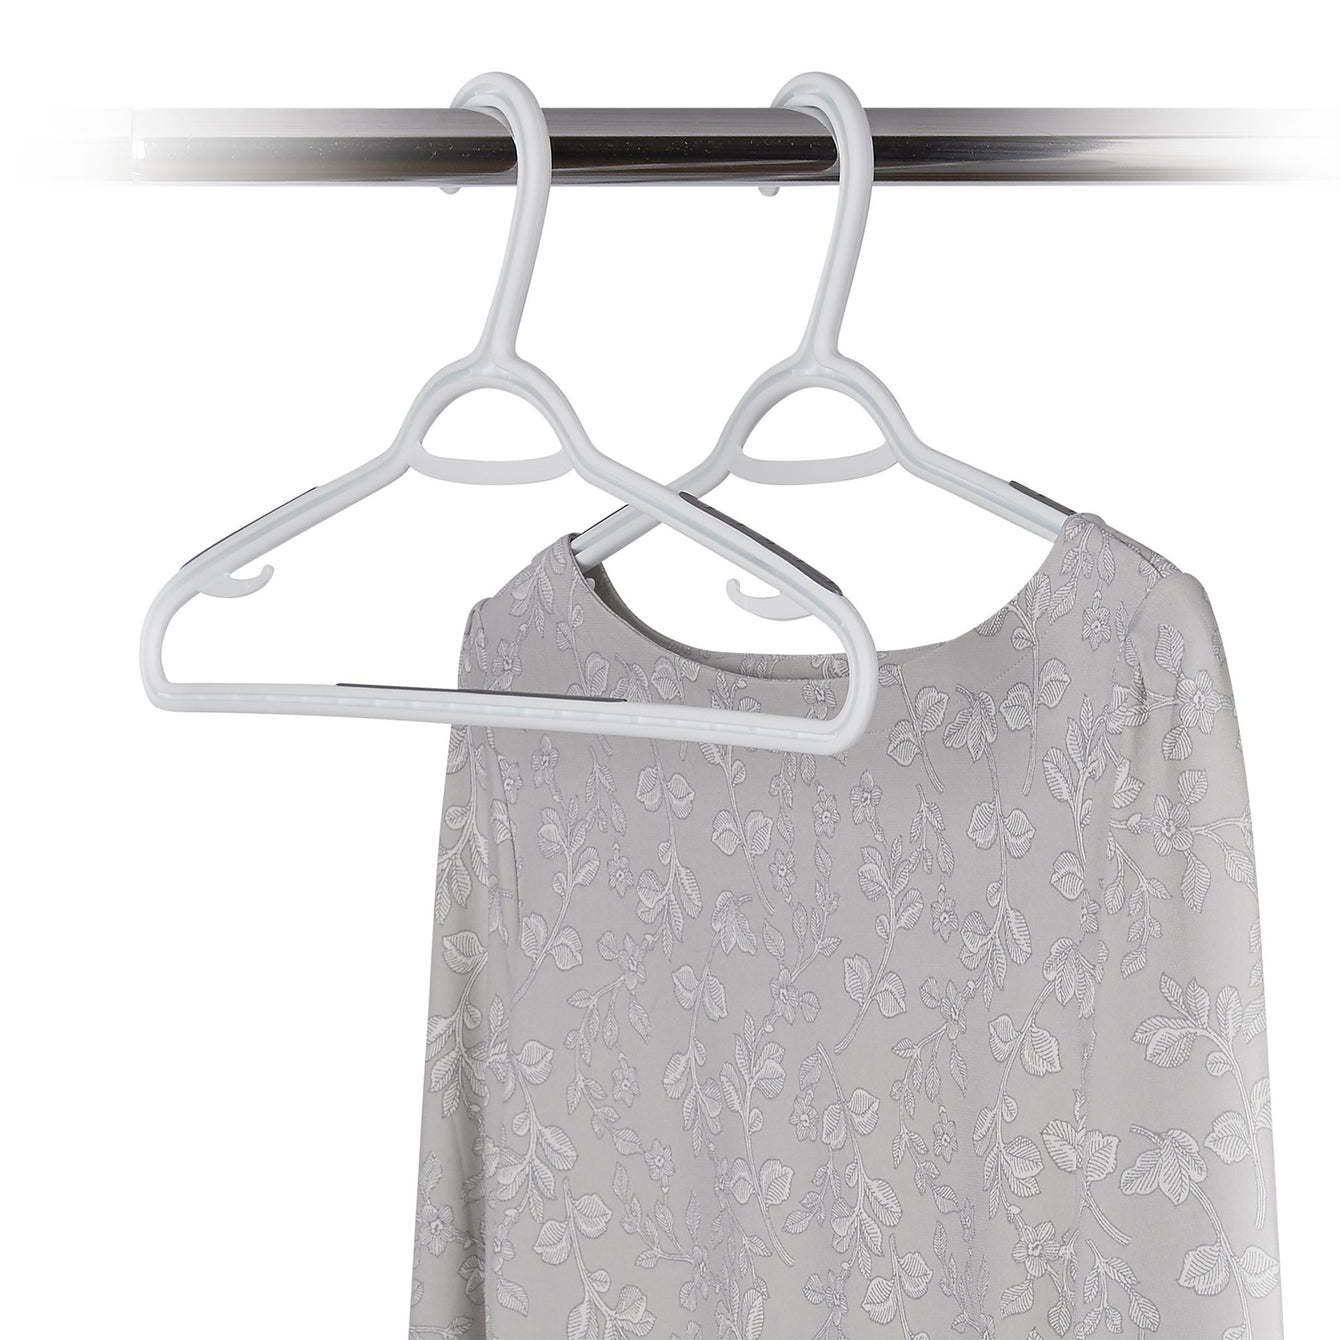 Set of 120 Non Slip Clothes Hanger